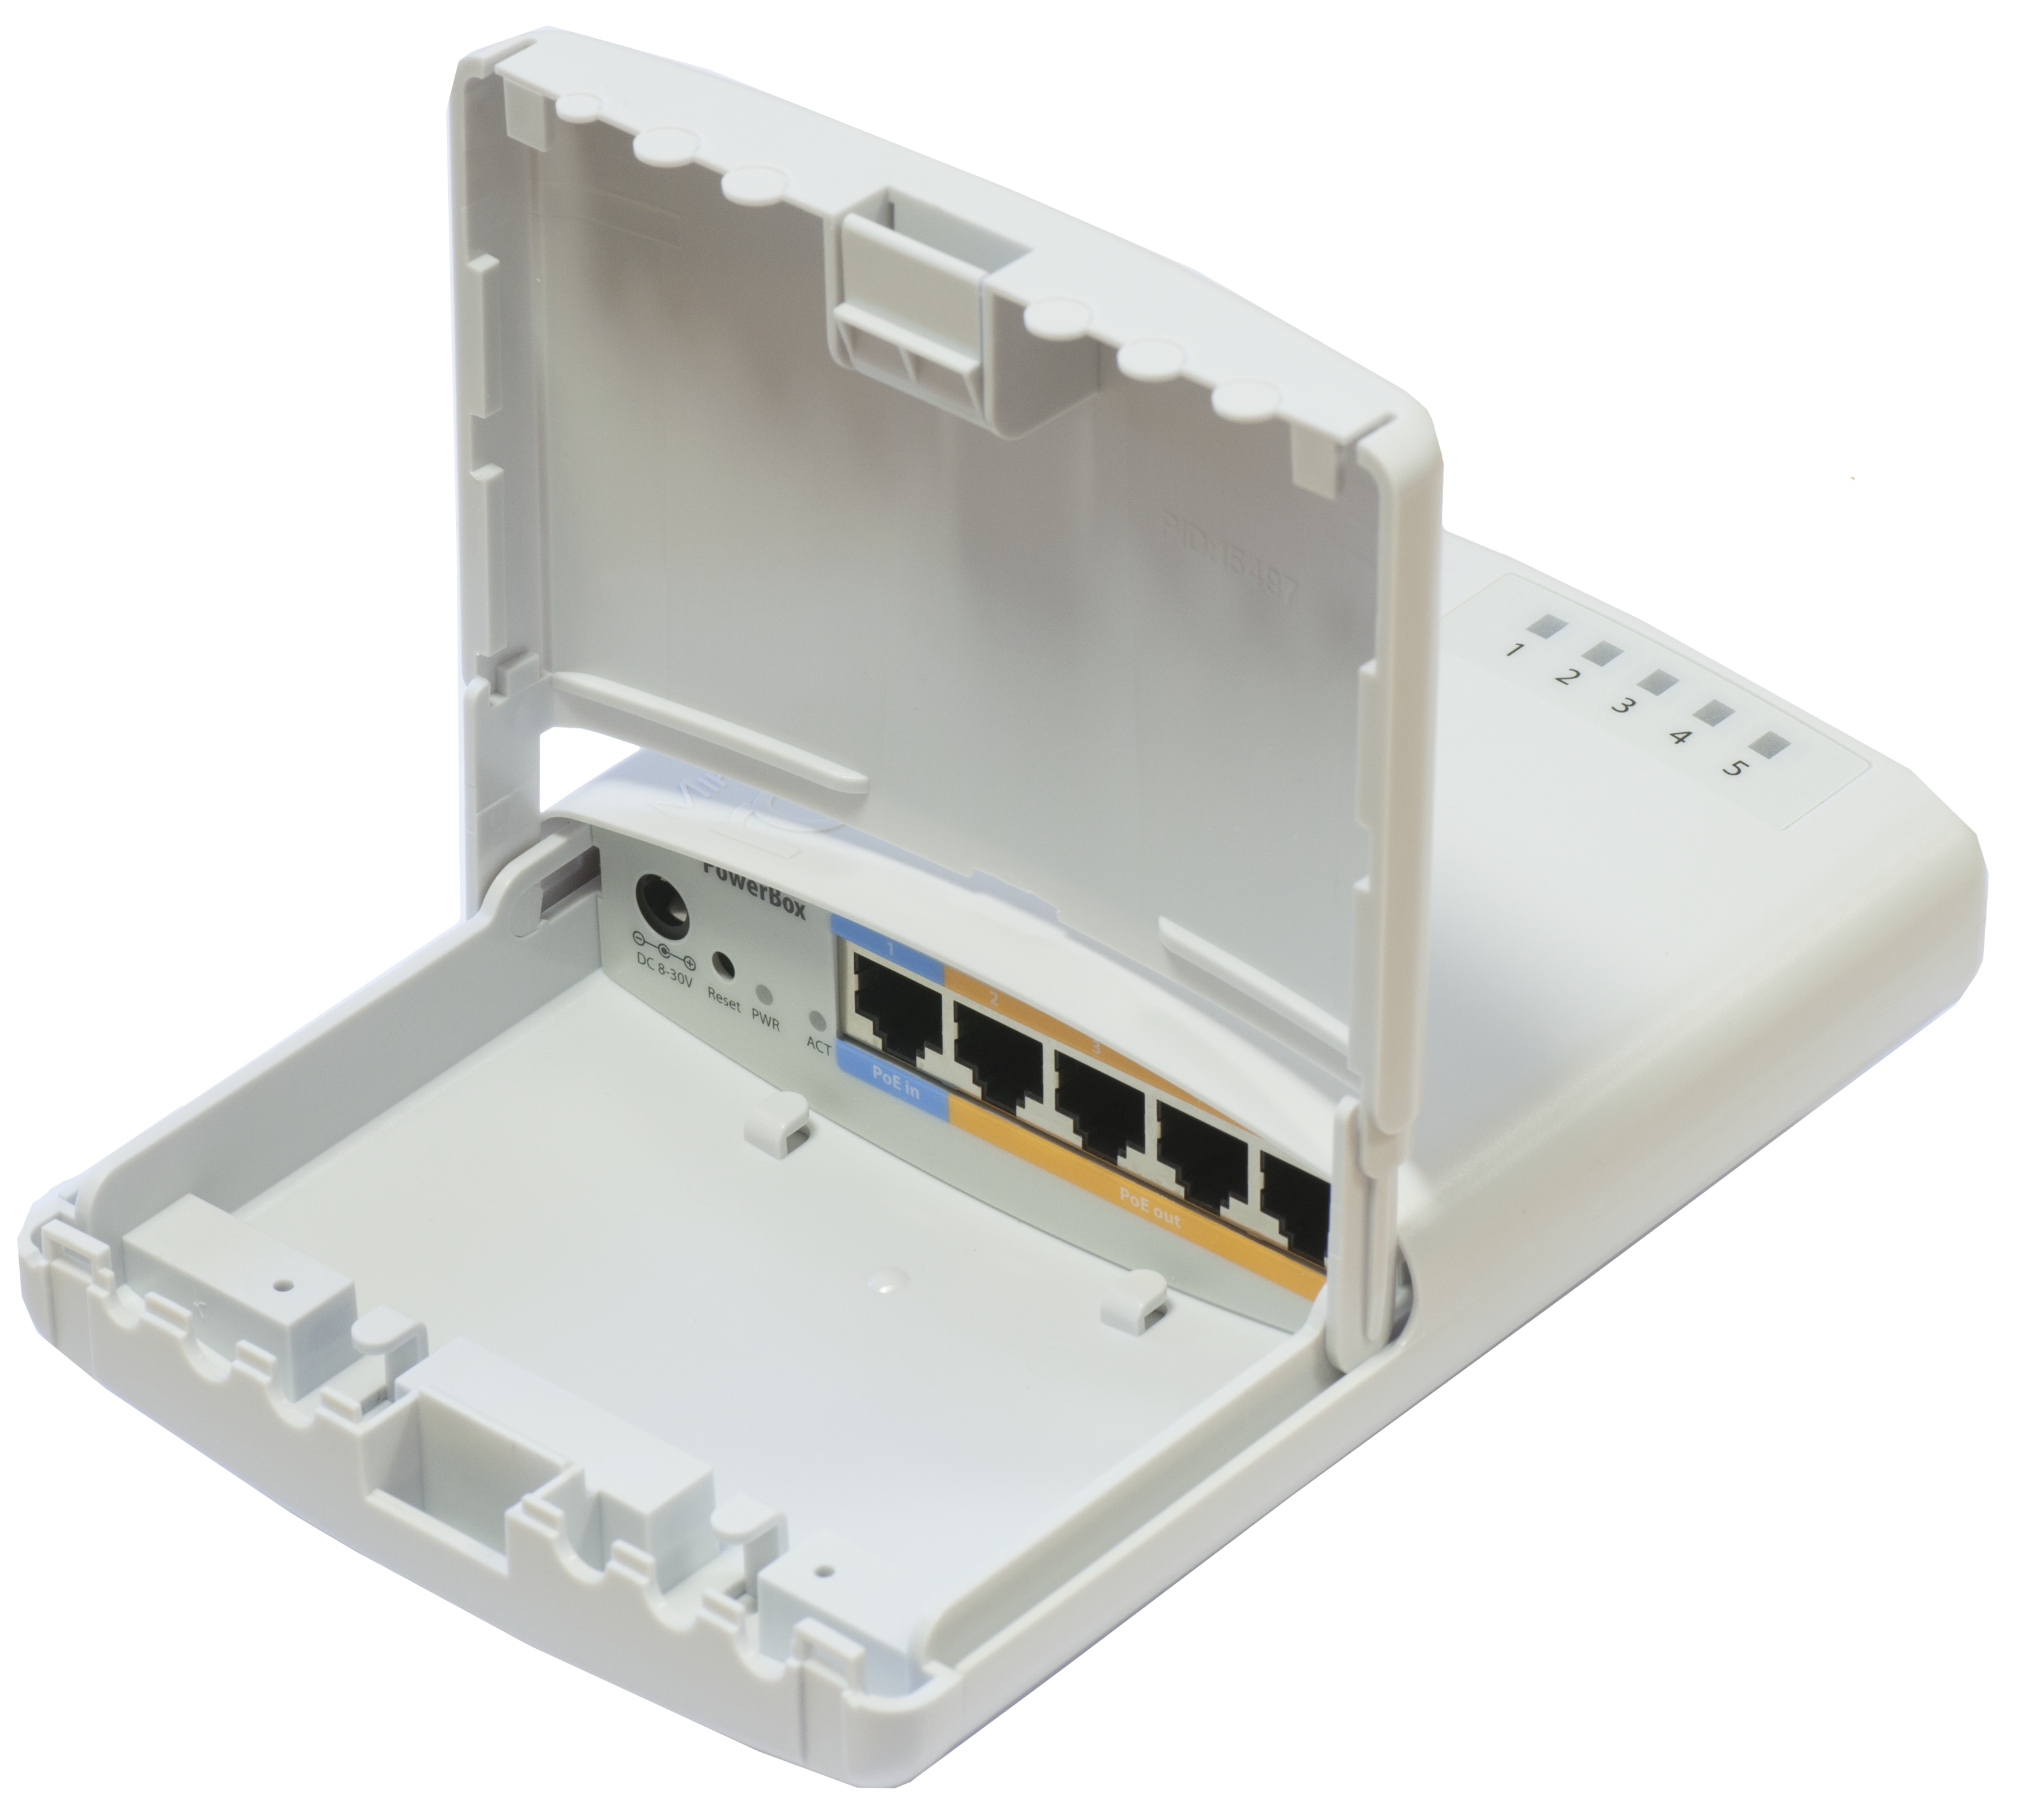 MikroTik Routers and Wireless - Products: PowerBox